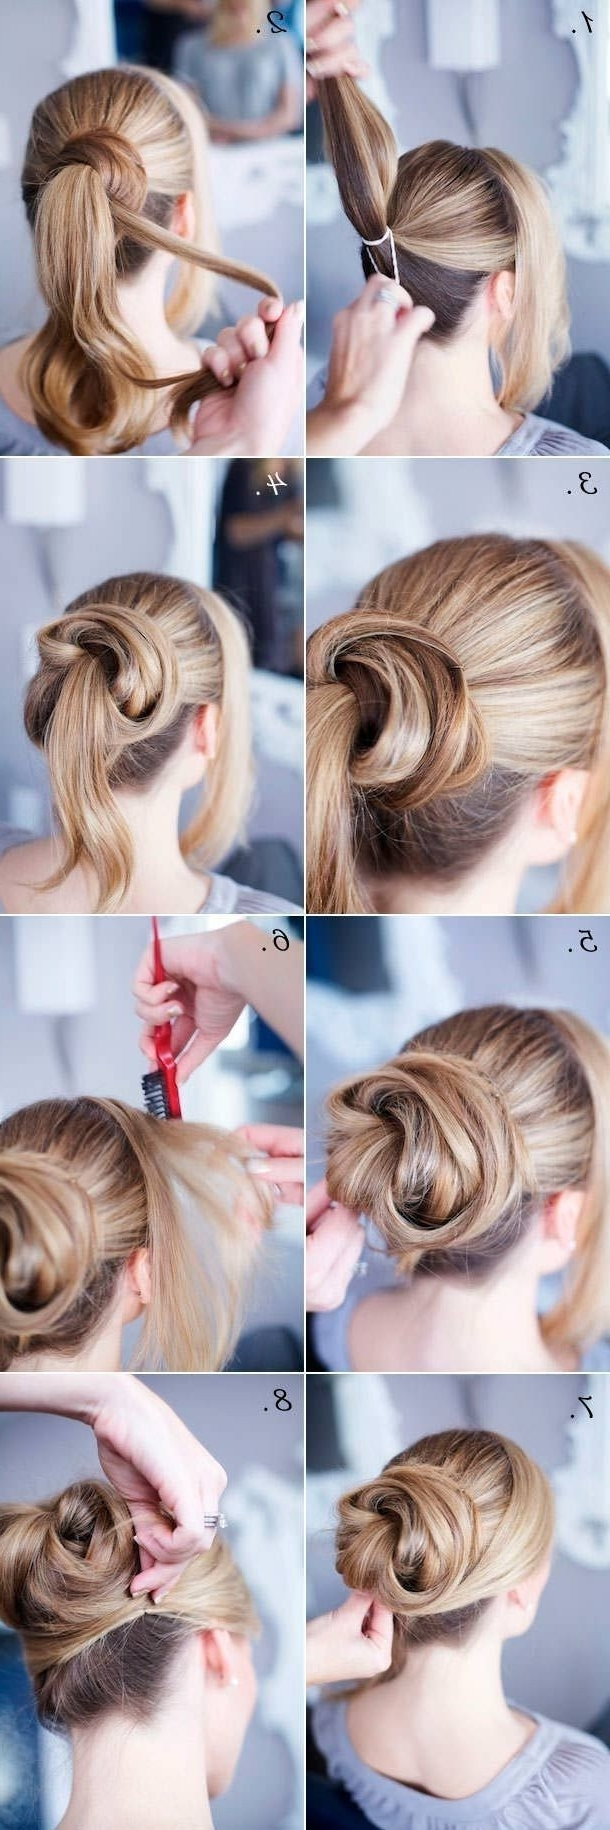 14 Easy Stepstep Updo Hairstyles Tutorials – Pretty Designs For Easy Updo Hairstyles For Long Thin Hair (View 6 of 15)